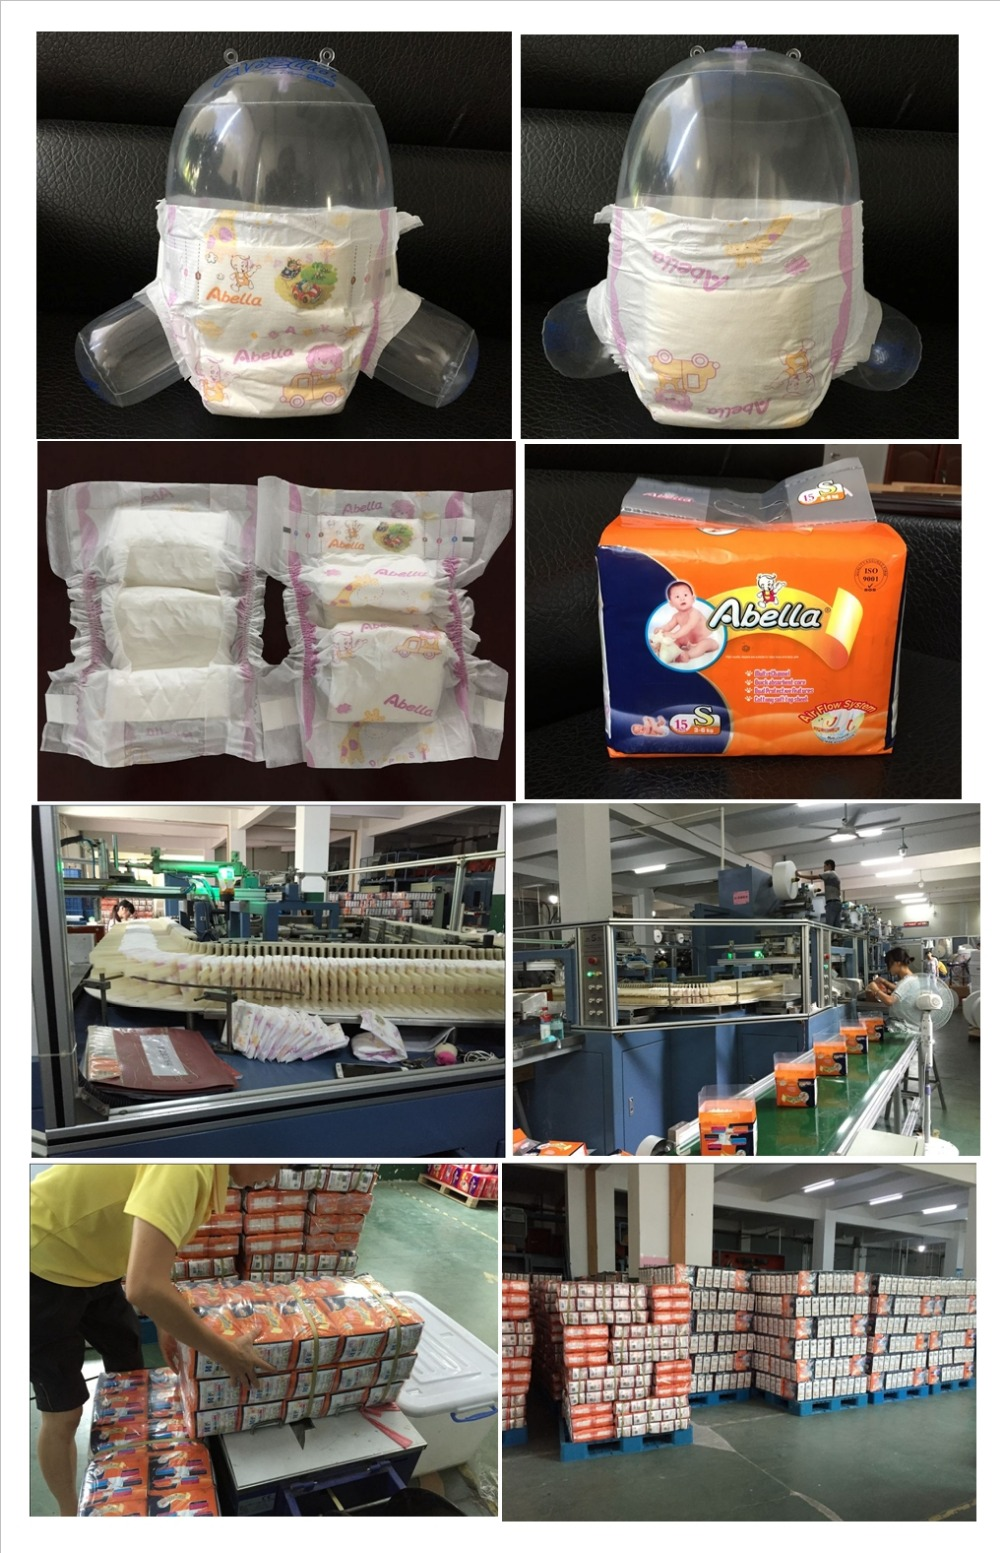 High quality Abella brand breathable cloth-like backsheet Magic tape disposable baby diaper